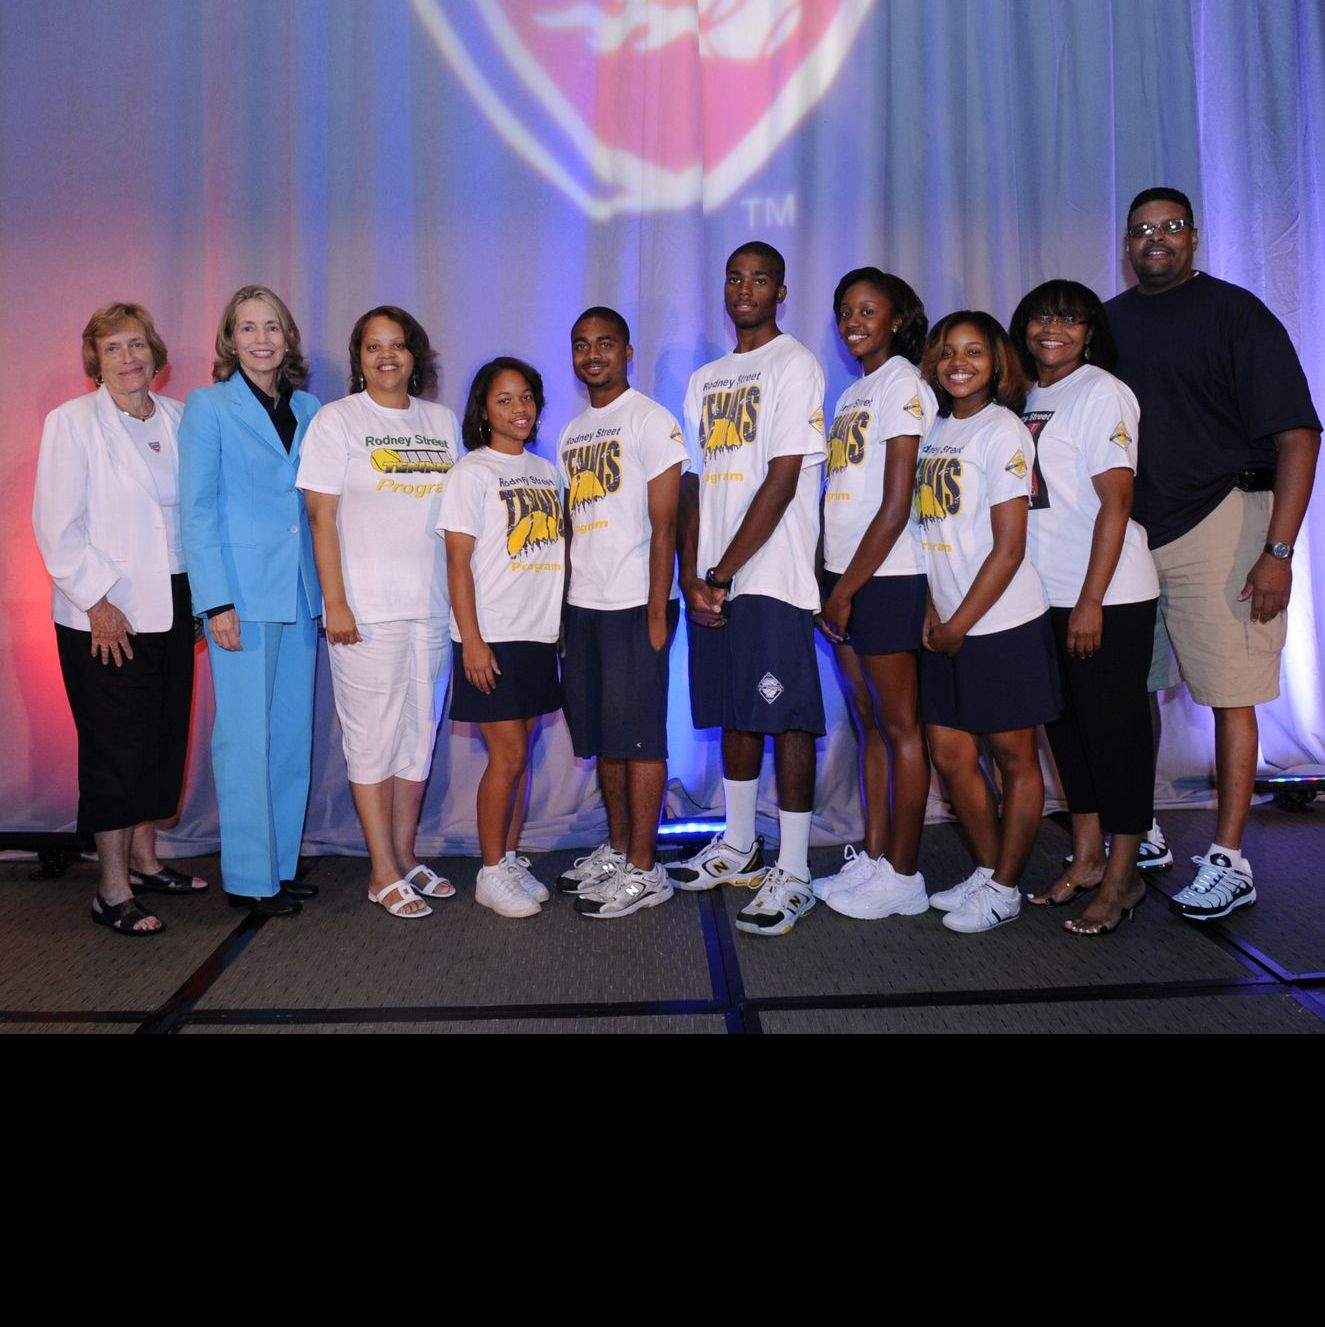 RSSTA Gets invited to USTA Annual Meeting